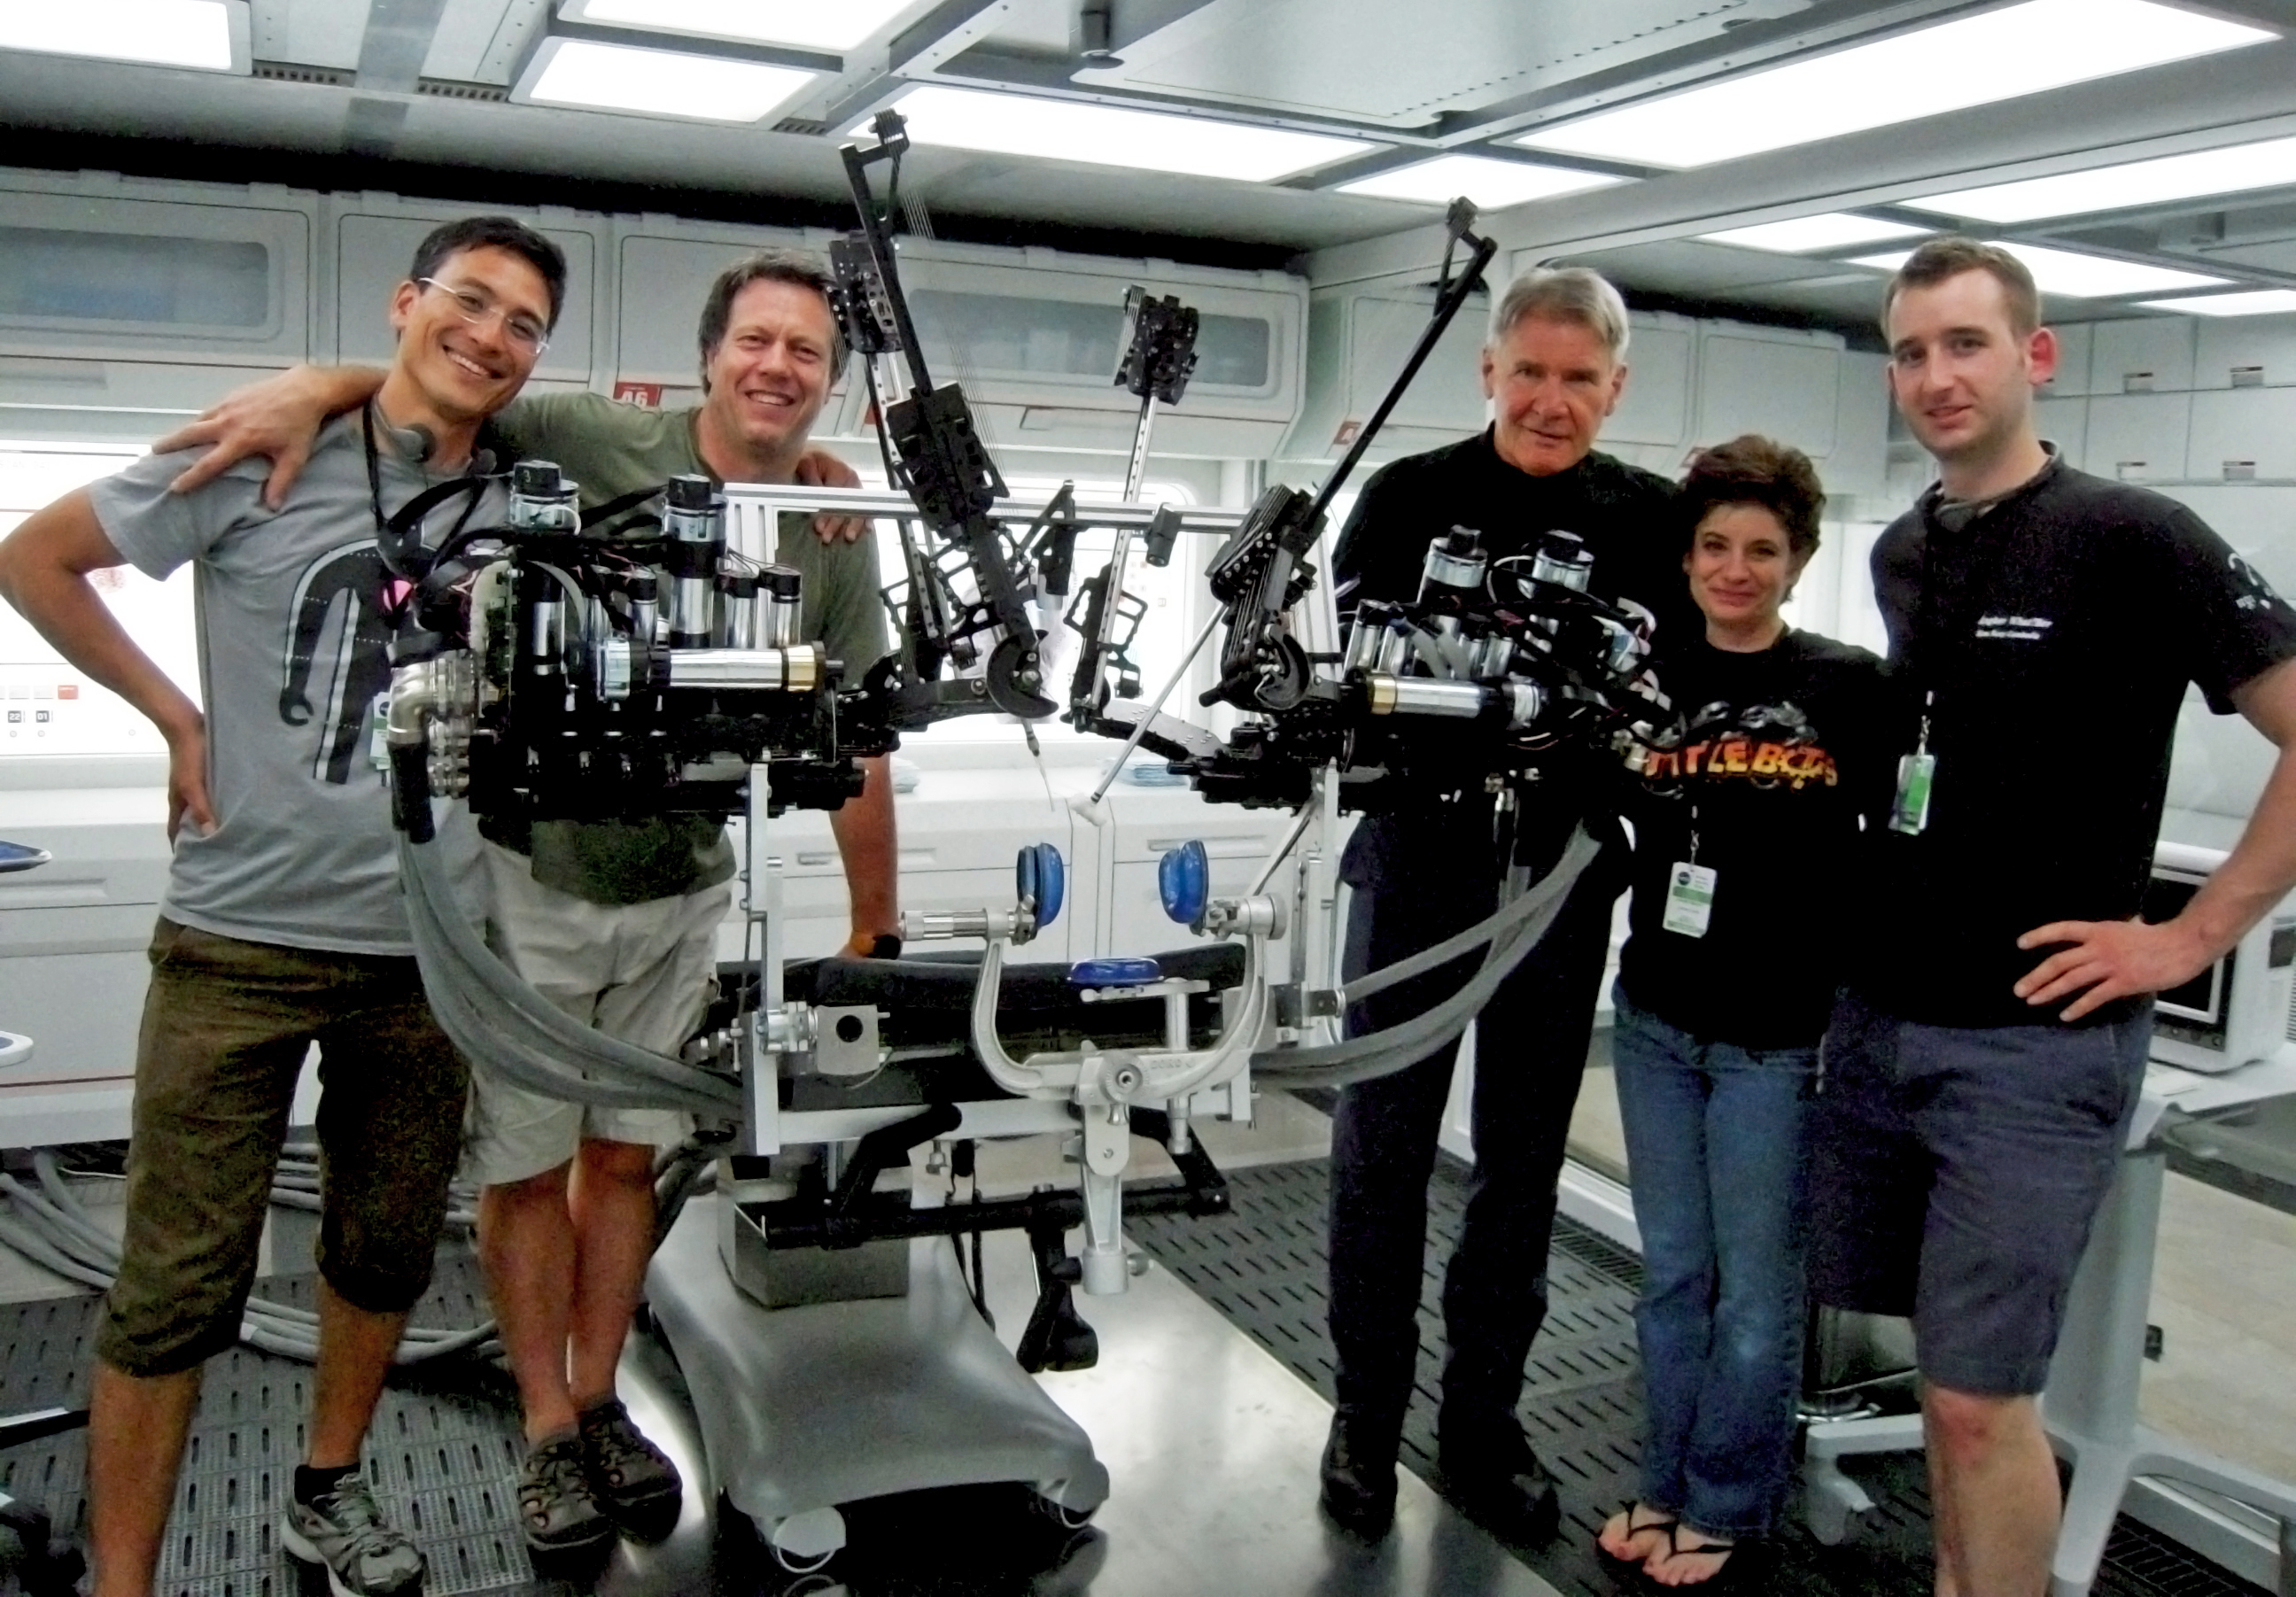 On the movie set with the University of Washington's Raven II surgical robot. From left to right: Hawkeye King, director Gavin Hood, Harrison Ford, robotics expert Joanne Pransky and Lee White.